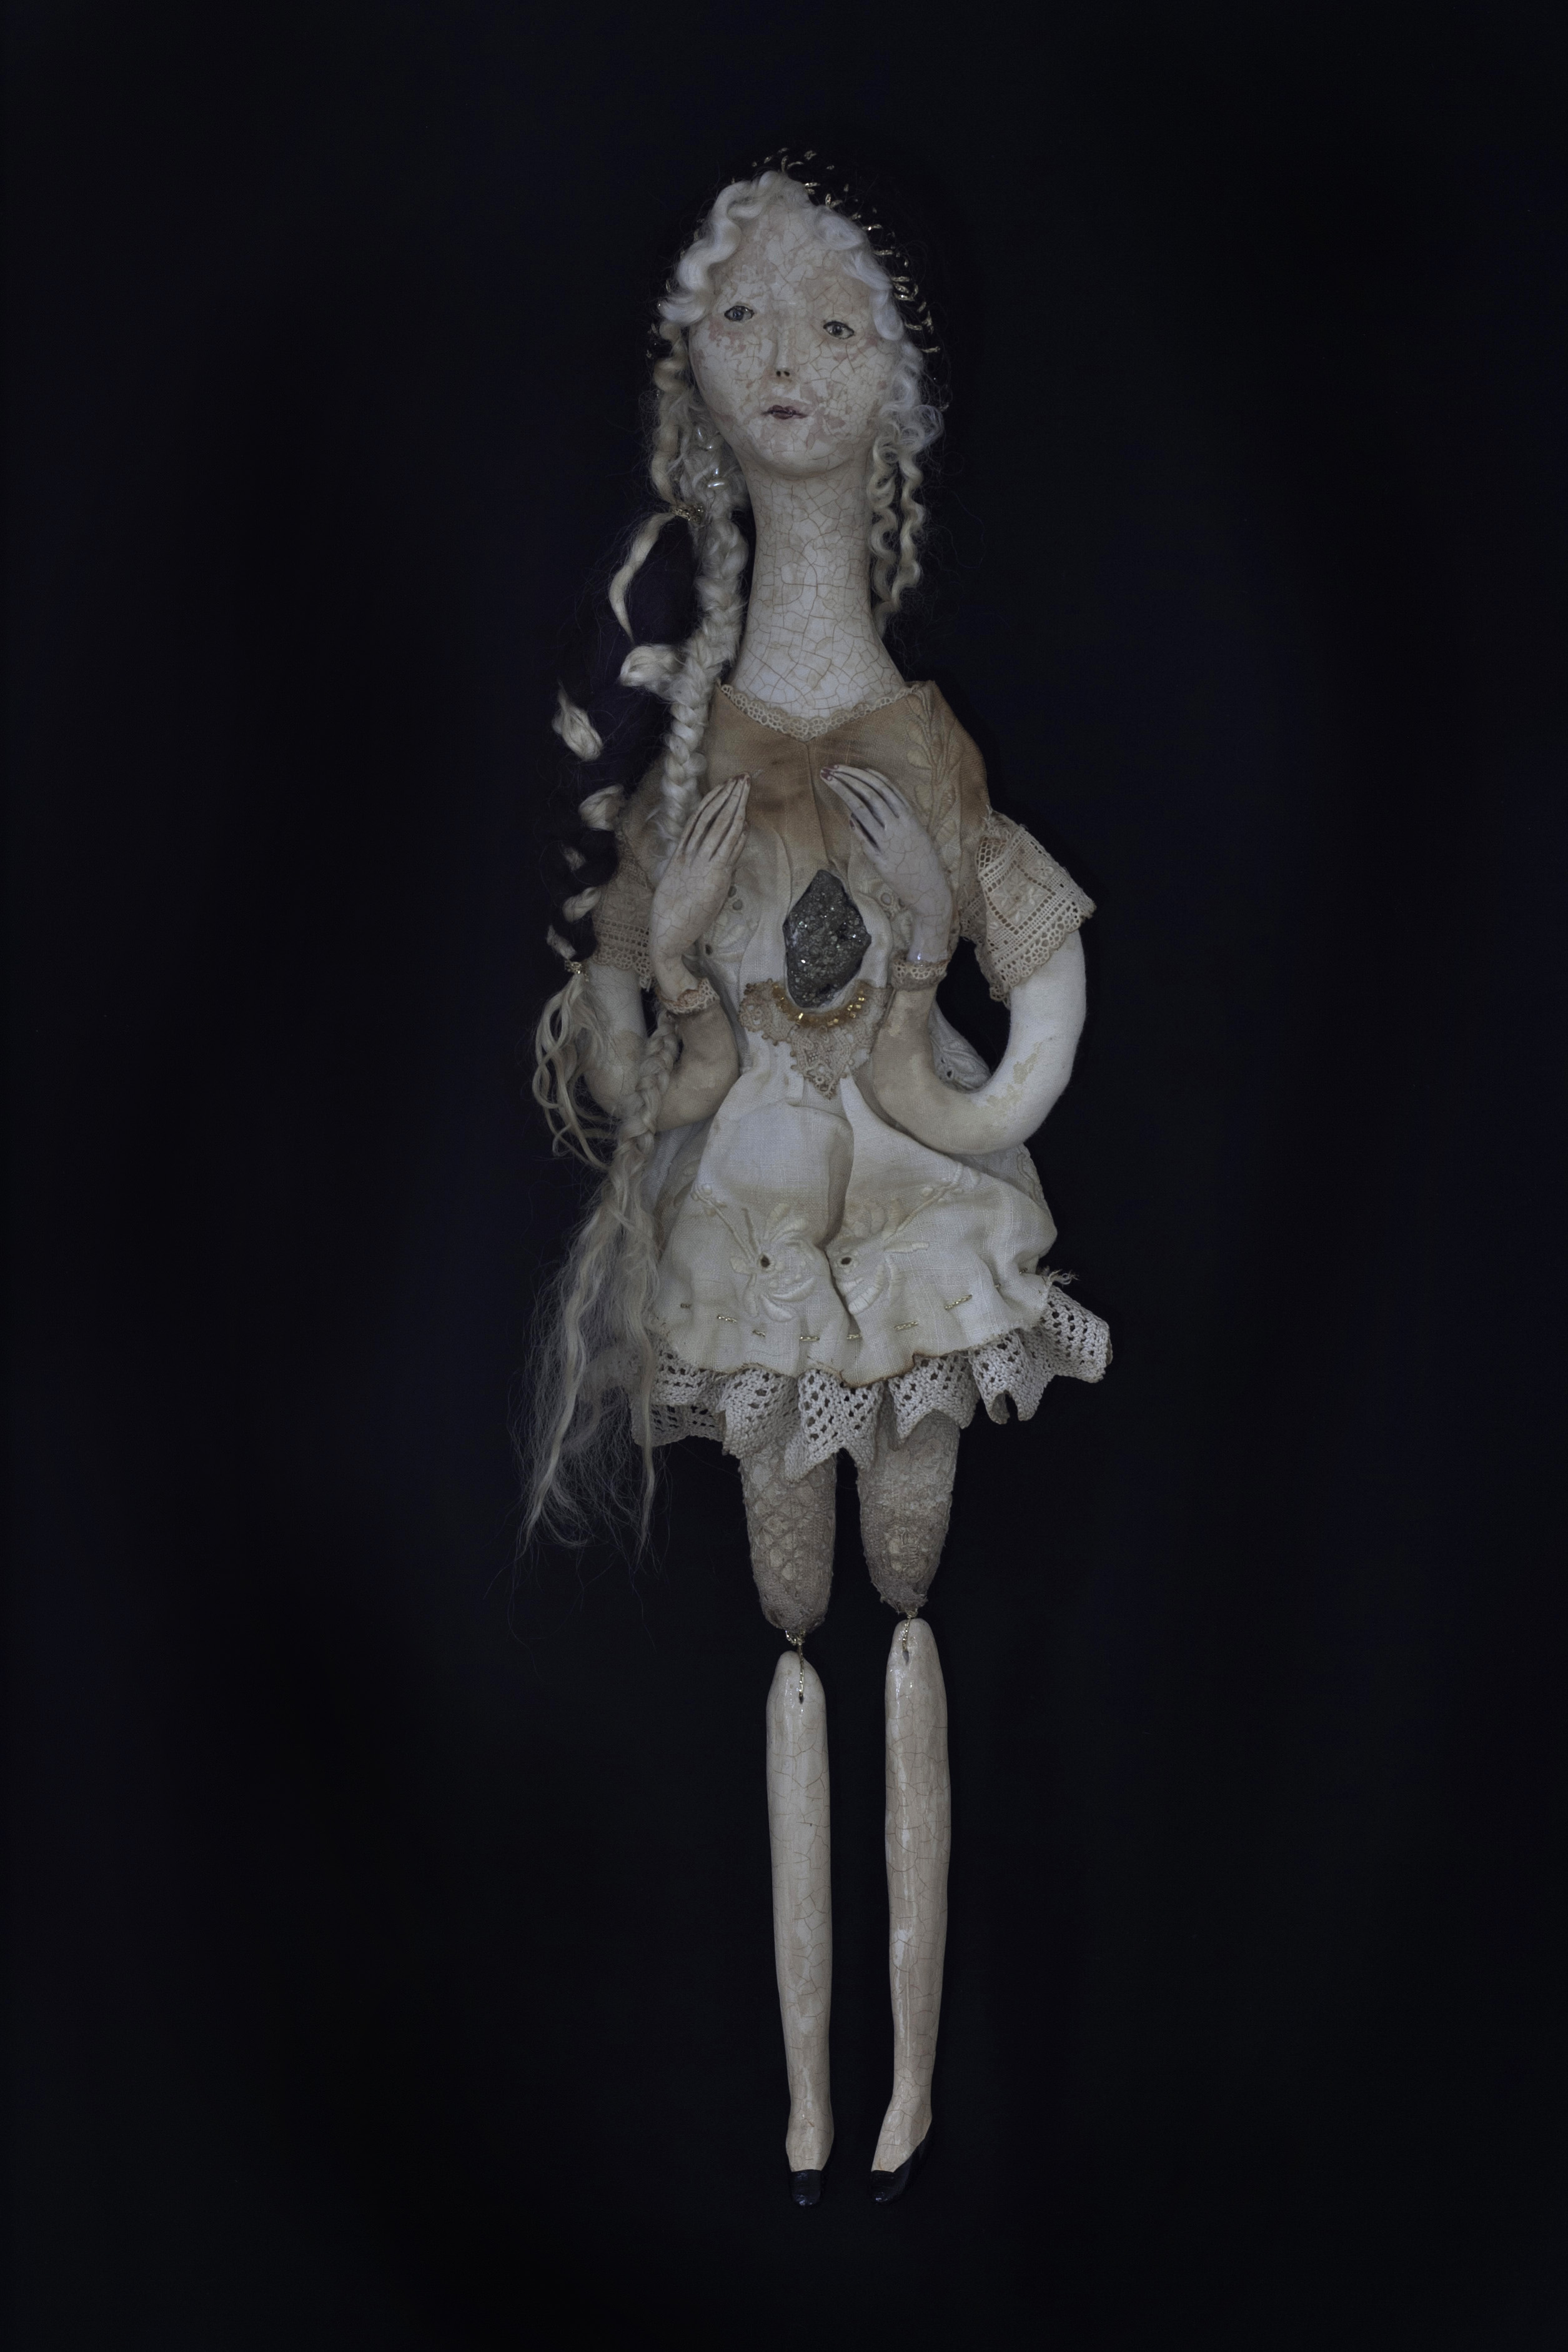 dark art doll